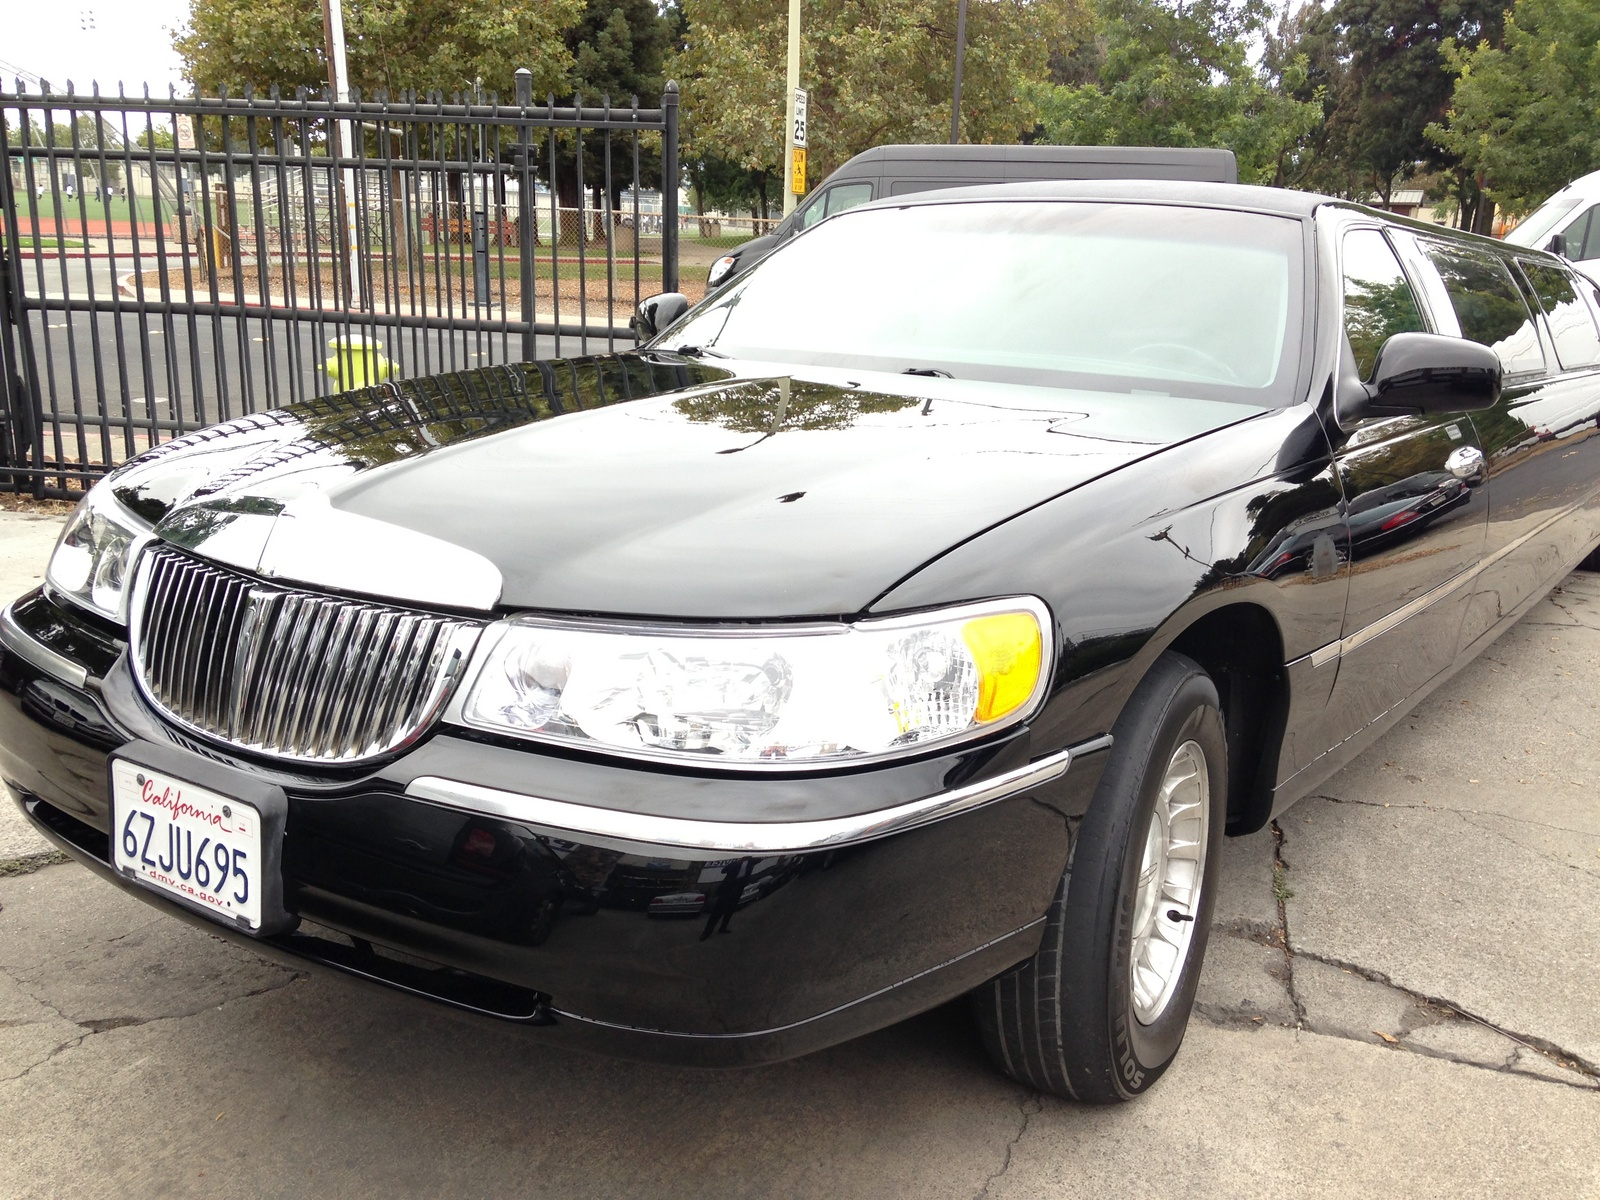 used lincoln town car for sale san jose ca cargurus. Black Bedroom Furniture Sets. Home Design Ideas